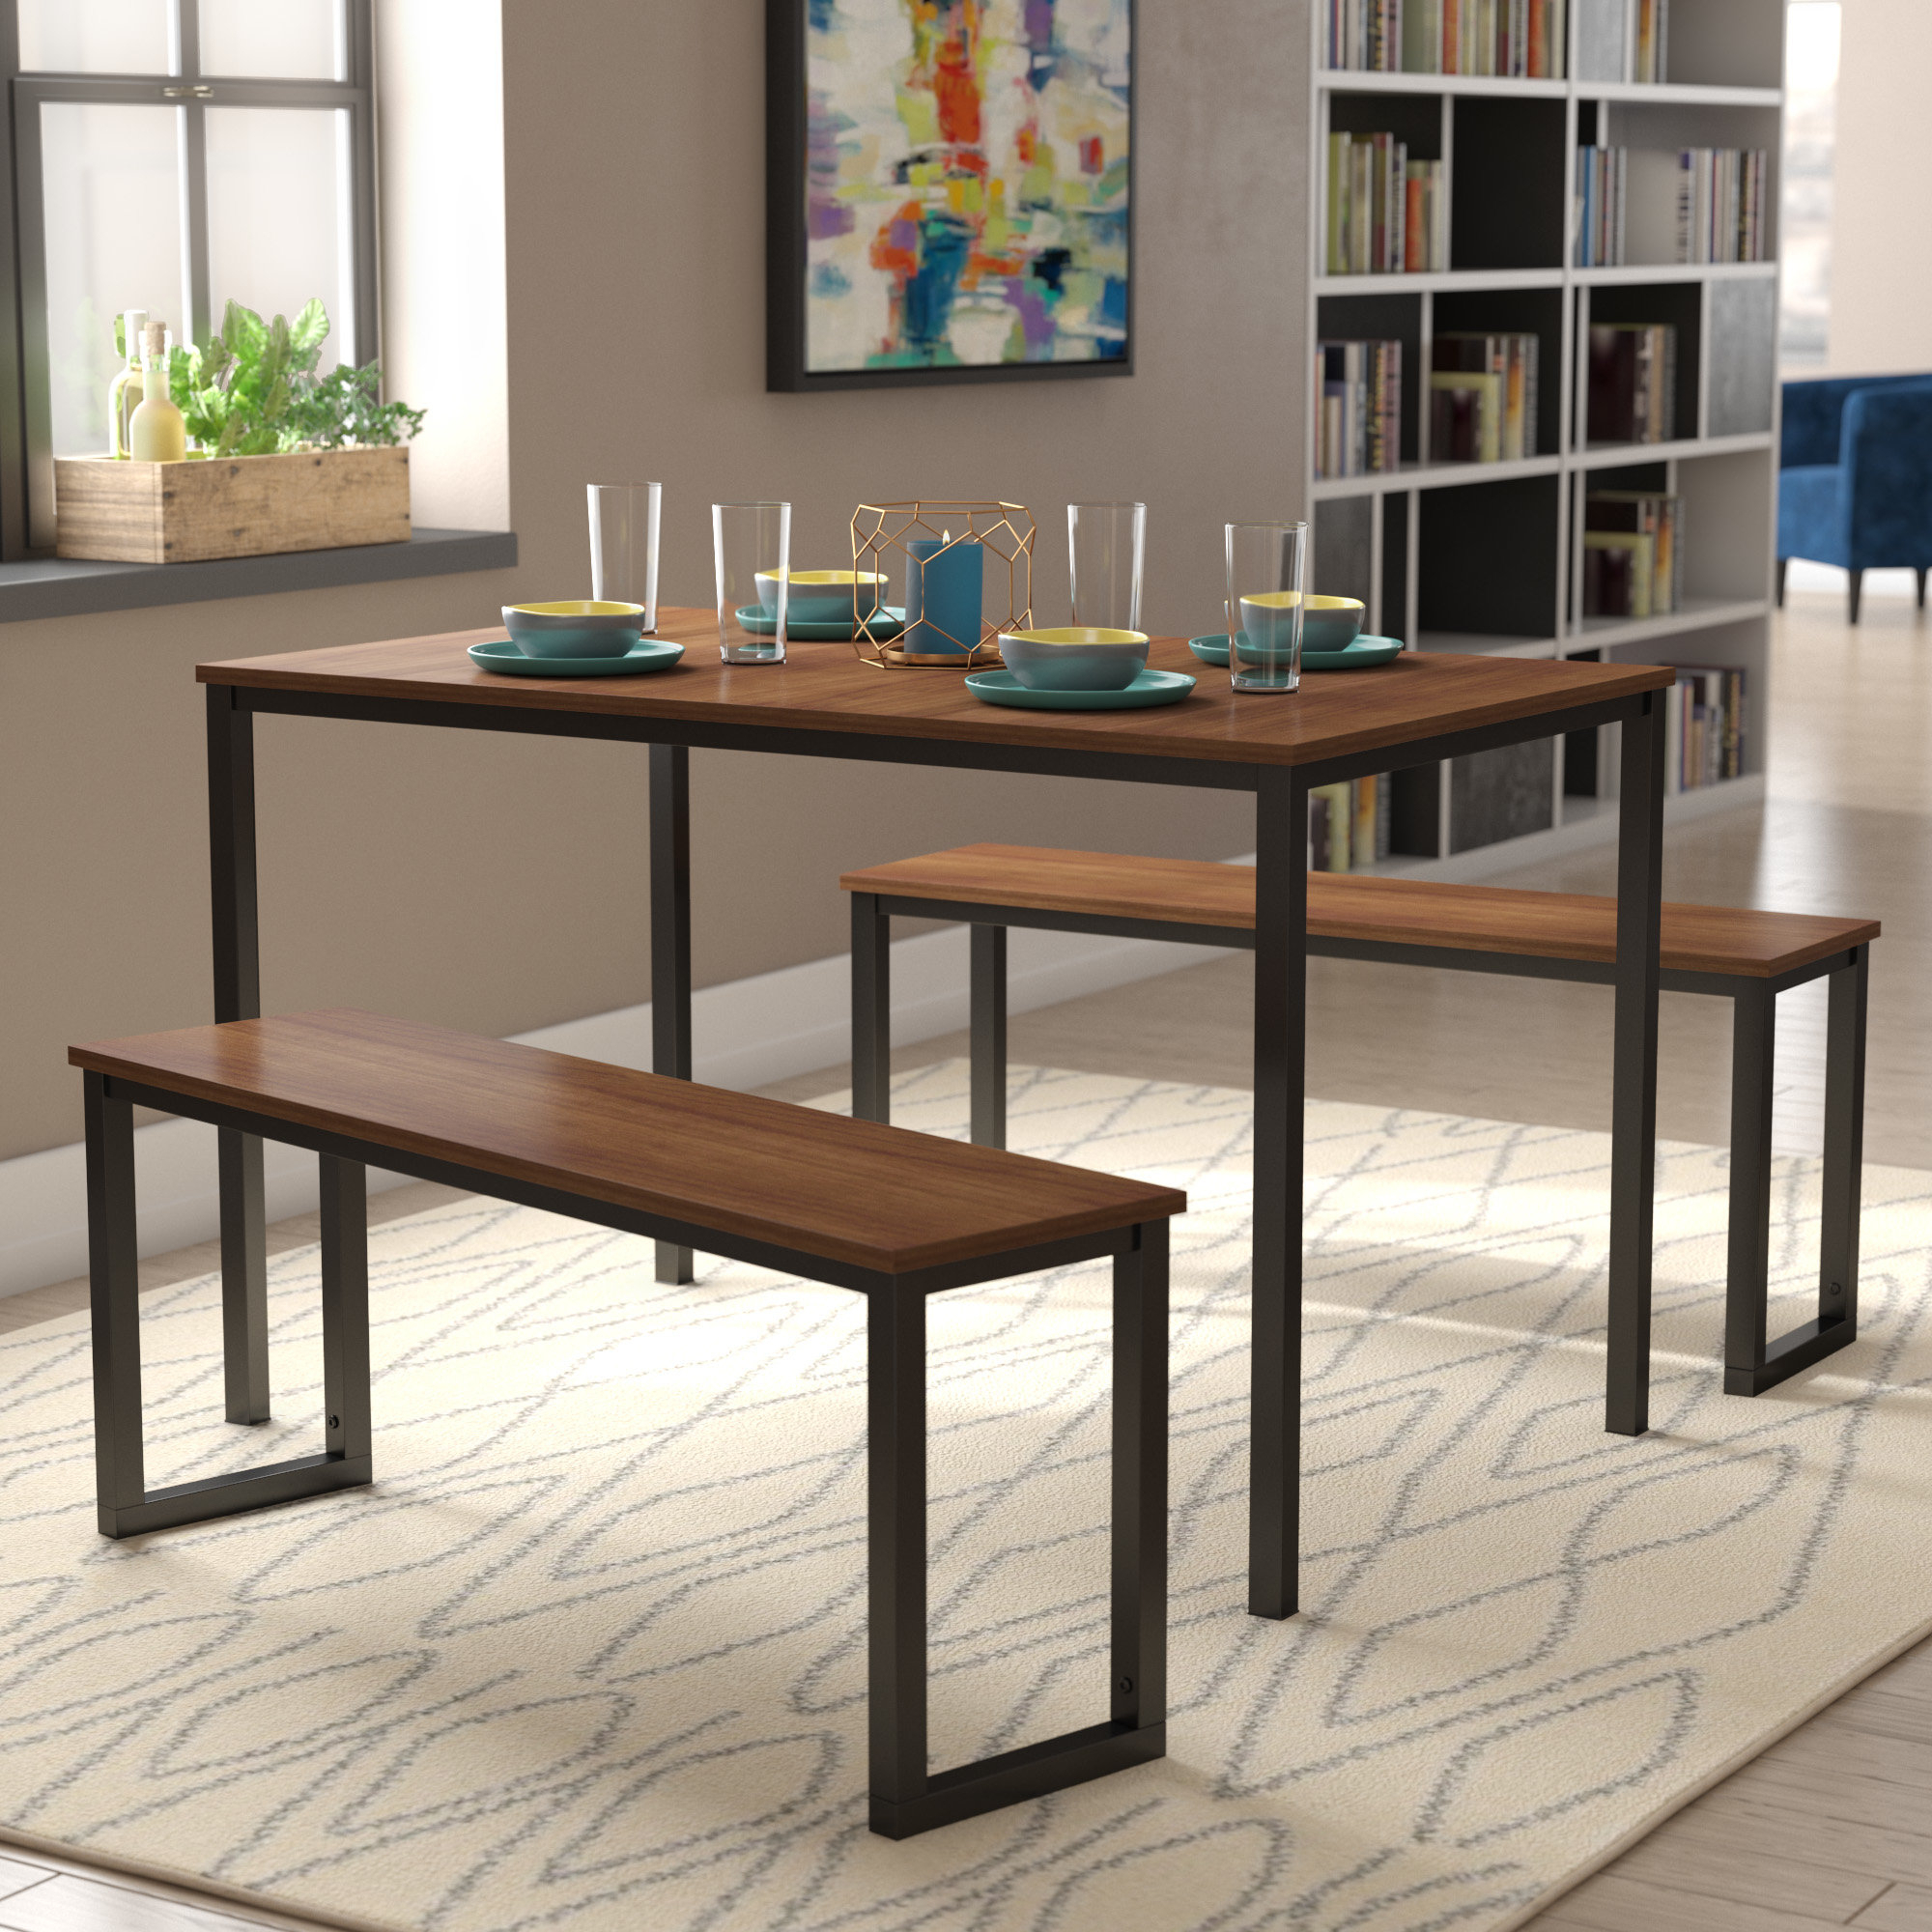 Rossiter 3 Piece Dining Sets intended for Most Recently Released Modern Rustic Interiors Frida 3 Piece Dining Table Set & Reviews